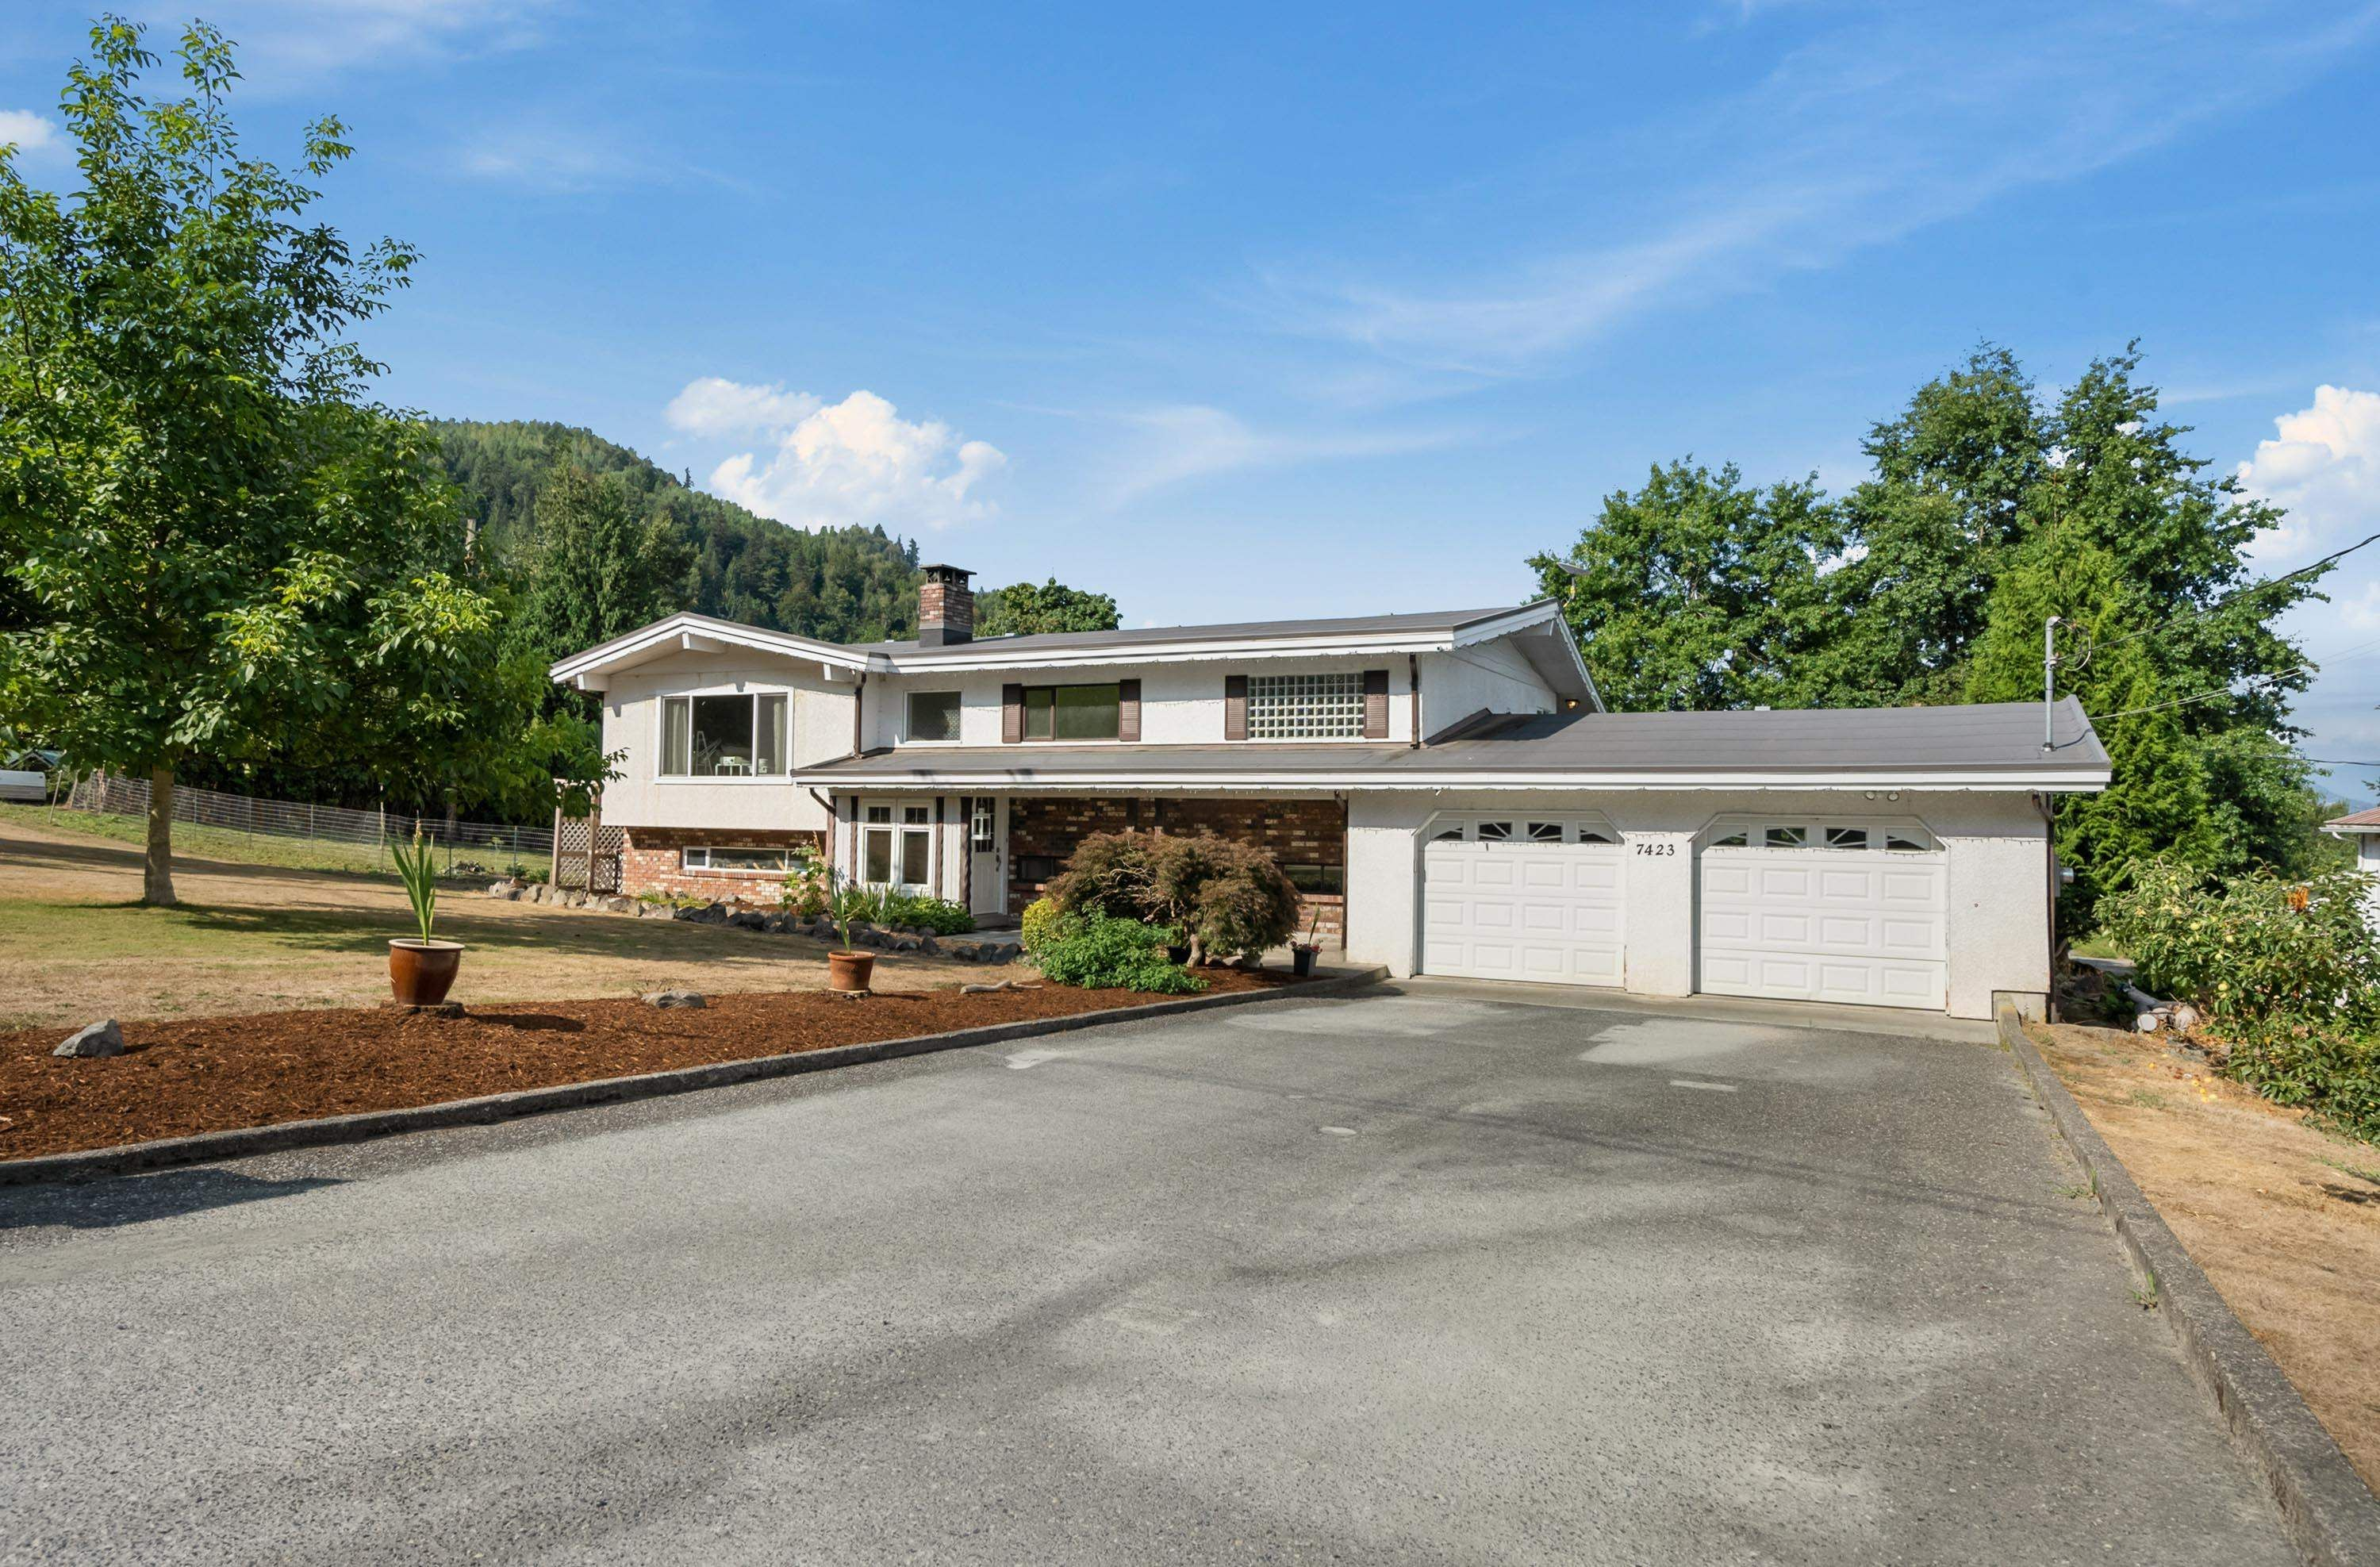 Main Photo: 7423 UPPER PRAIRIE Road in Chilliwack: East Chilliwack House for sale : MLS®# R2611636